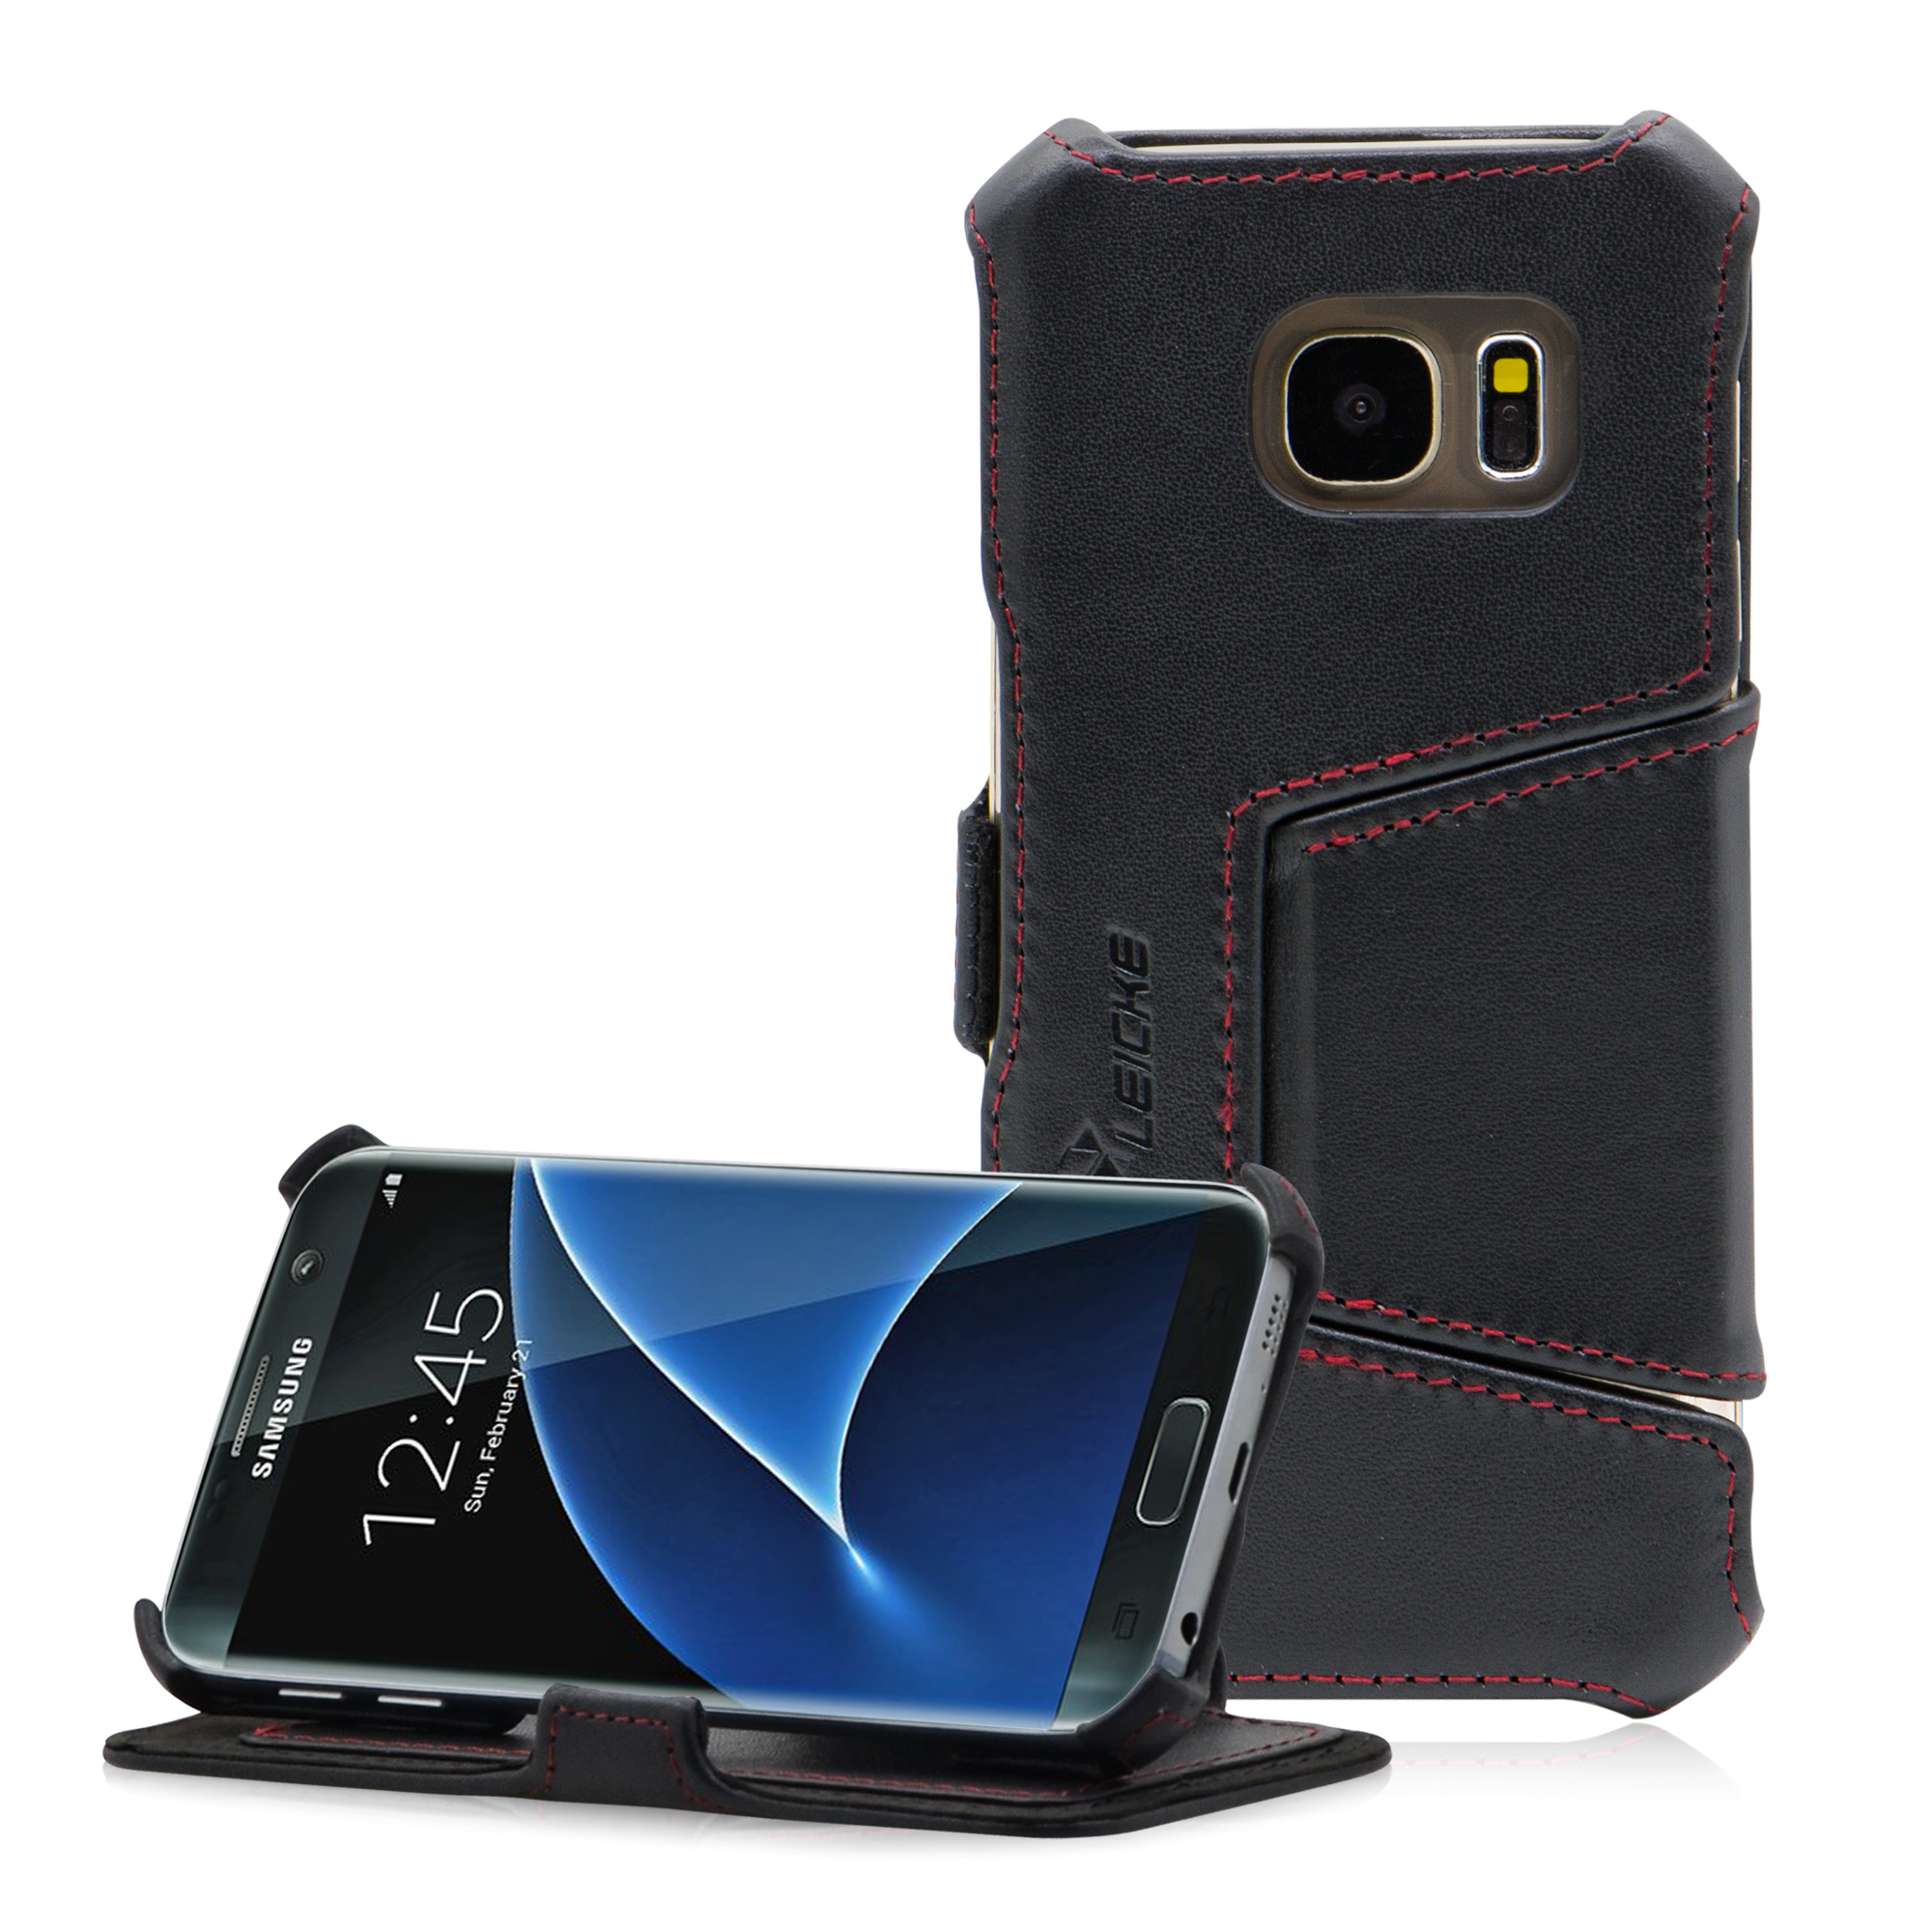 b2e0427ccf8 MANNA UltraSlim Samsung Galaxy S7 Leather Case Book Folio Cover Wallet  MN60242. Easy Stand & Card Slot | Finest Nappa Leather | Black. Mn60242 01  2000 2000 ...